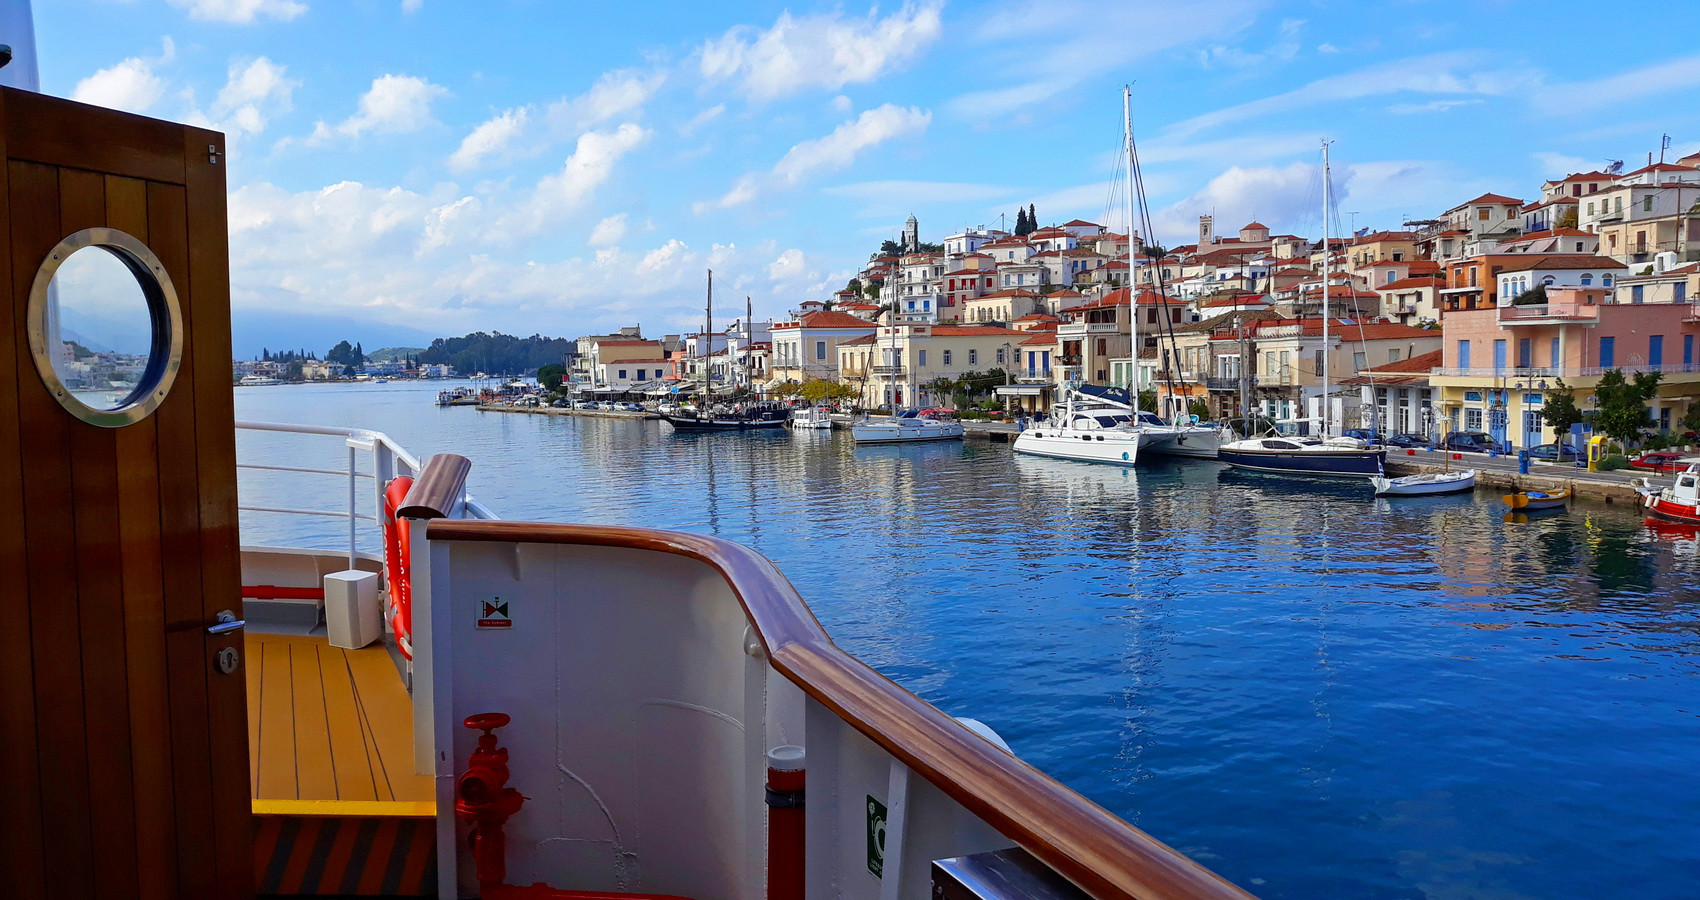 POROS VIEW FROM SHIP